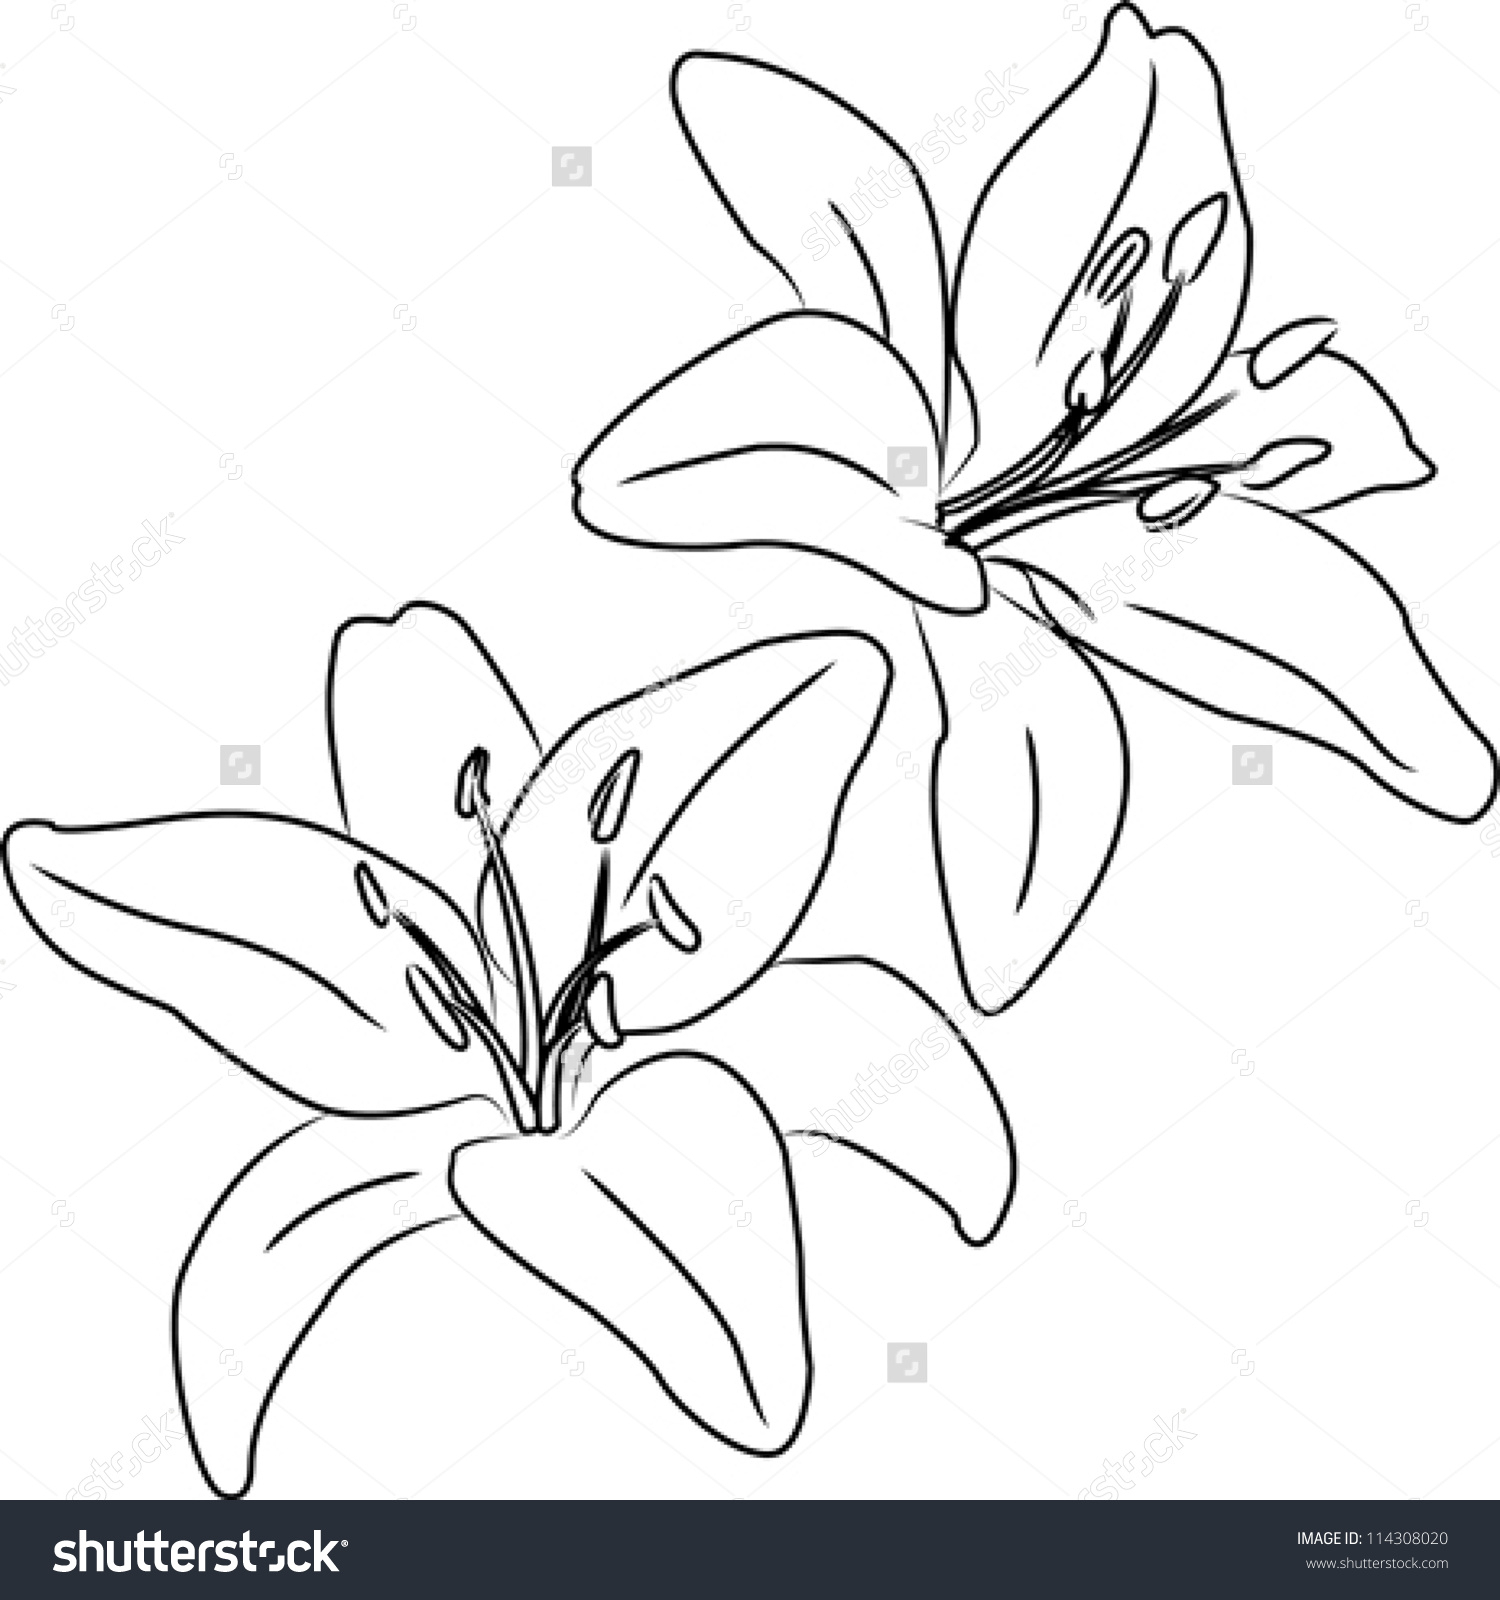 1500x1600 Flower Drawing Outline Outline Of Flowers For Drawing Eletragesi